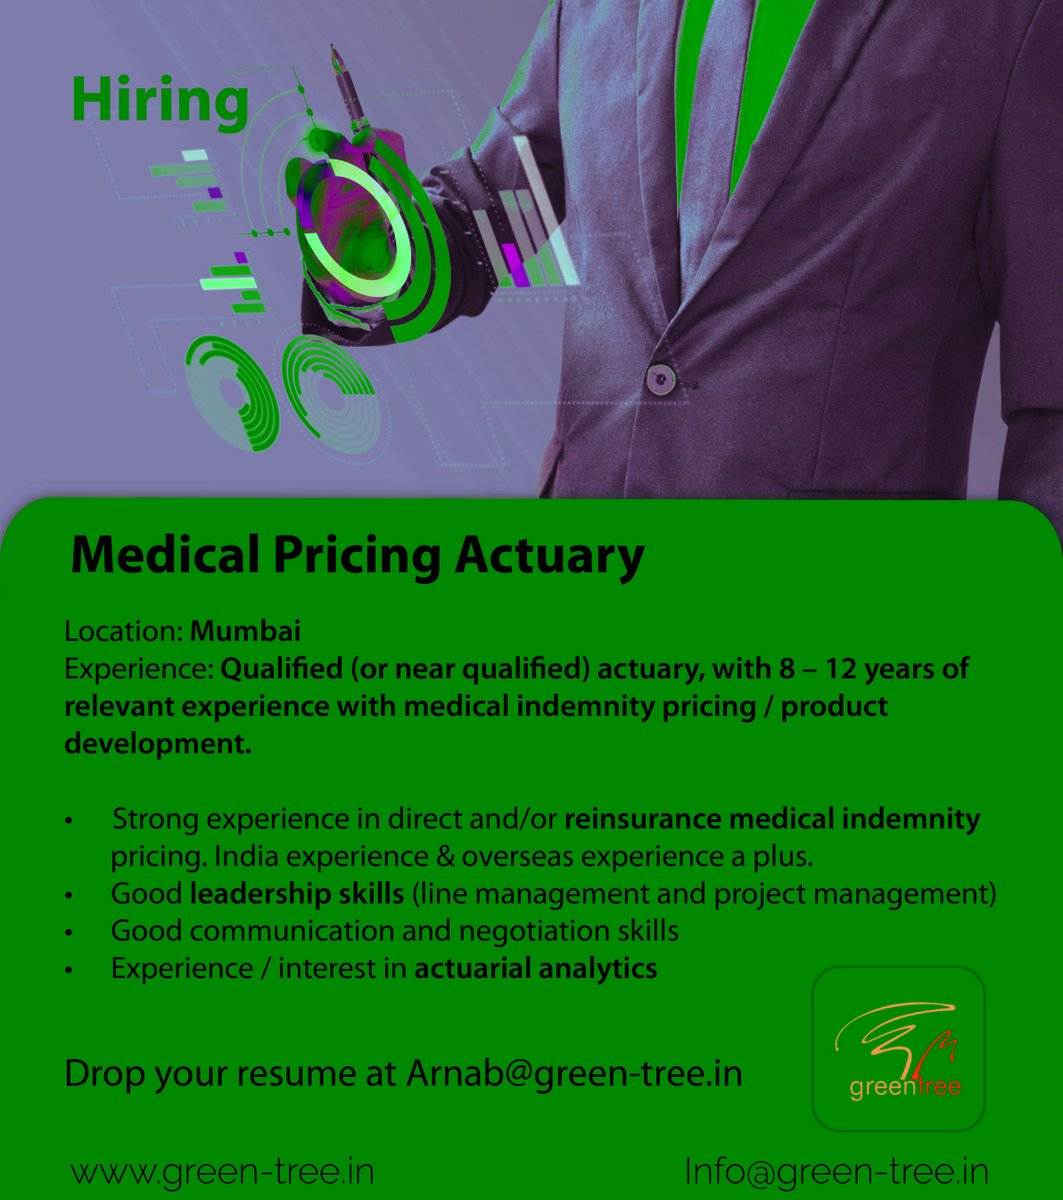 #WeareHiring Medical Pricing Actuary  #Comment Interested  Follow #Greentree for daily job updates! #actuaryjobs #lifeactuarial #riskmanagement #actuarialjobs #actuarialscience #actuariat #capitalmodeling #valuation #insuranceclaim #bankingandfinance #dataanalytics #spss https://t.co/CGDaBIU1JE